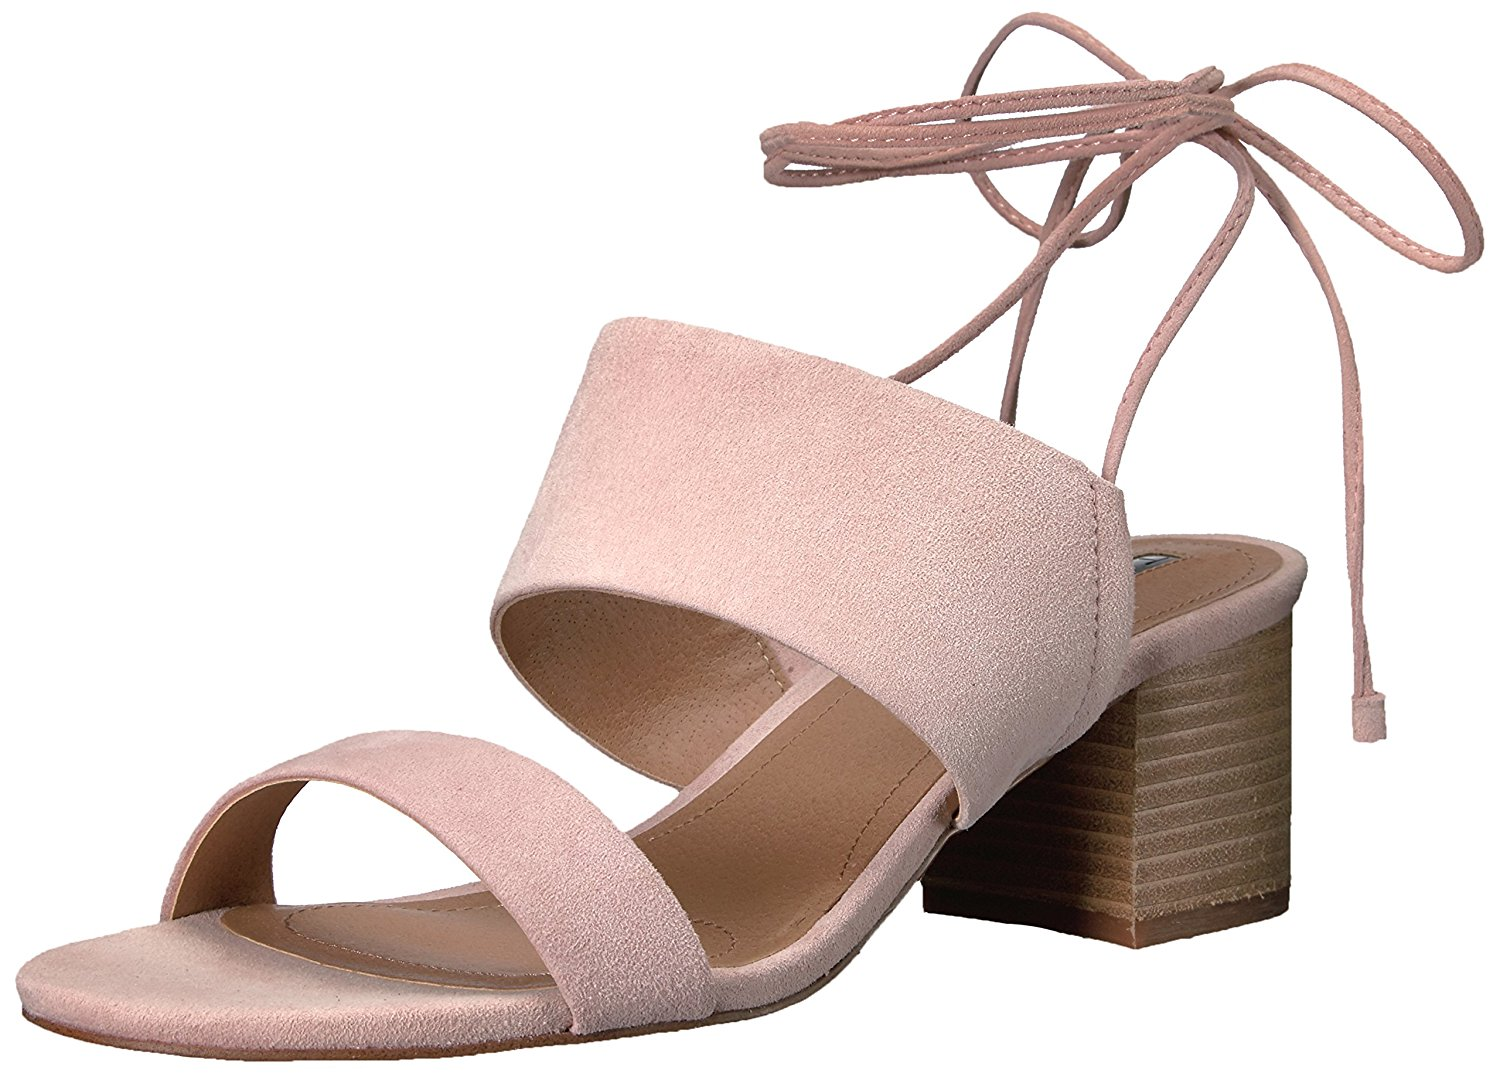 Tahari Womens Doe Leather Round Toe Casual Mule Sandals Ballet Pink Size 9.0 8